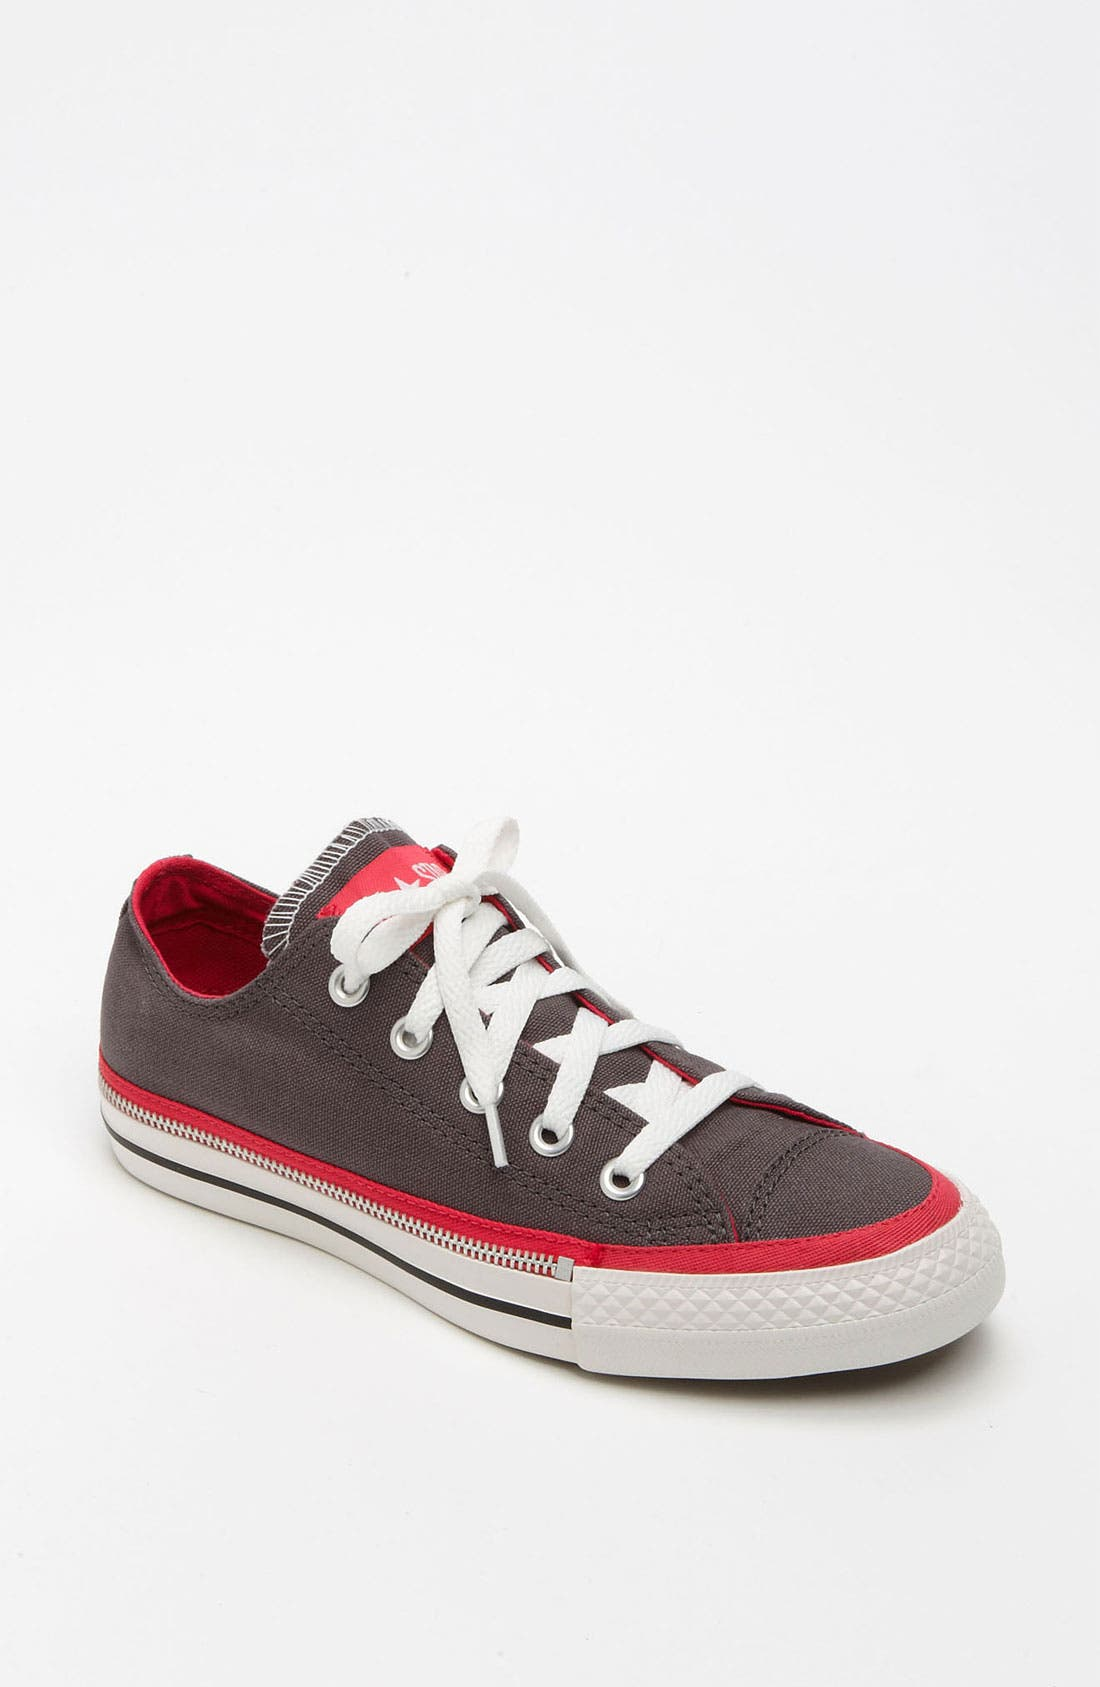 Alternate Image 1 Selected - Converse Chuck Taylor® Zipper Sneaker (Women)